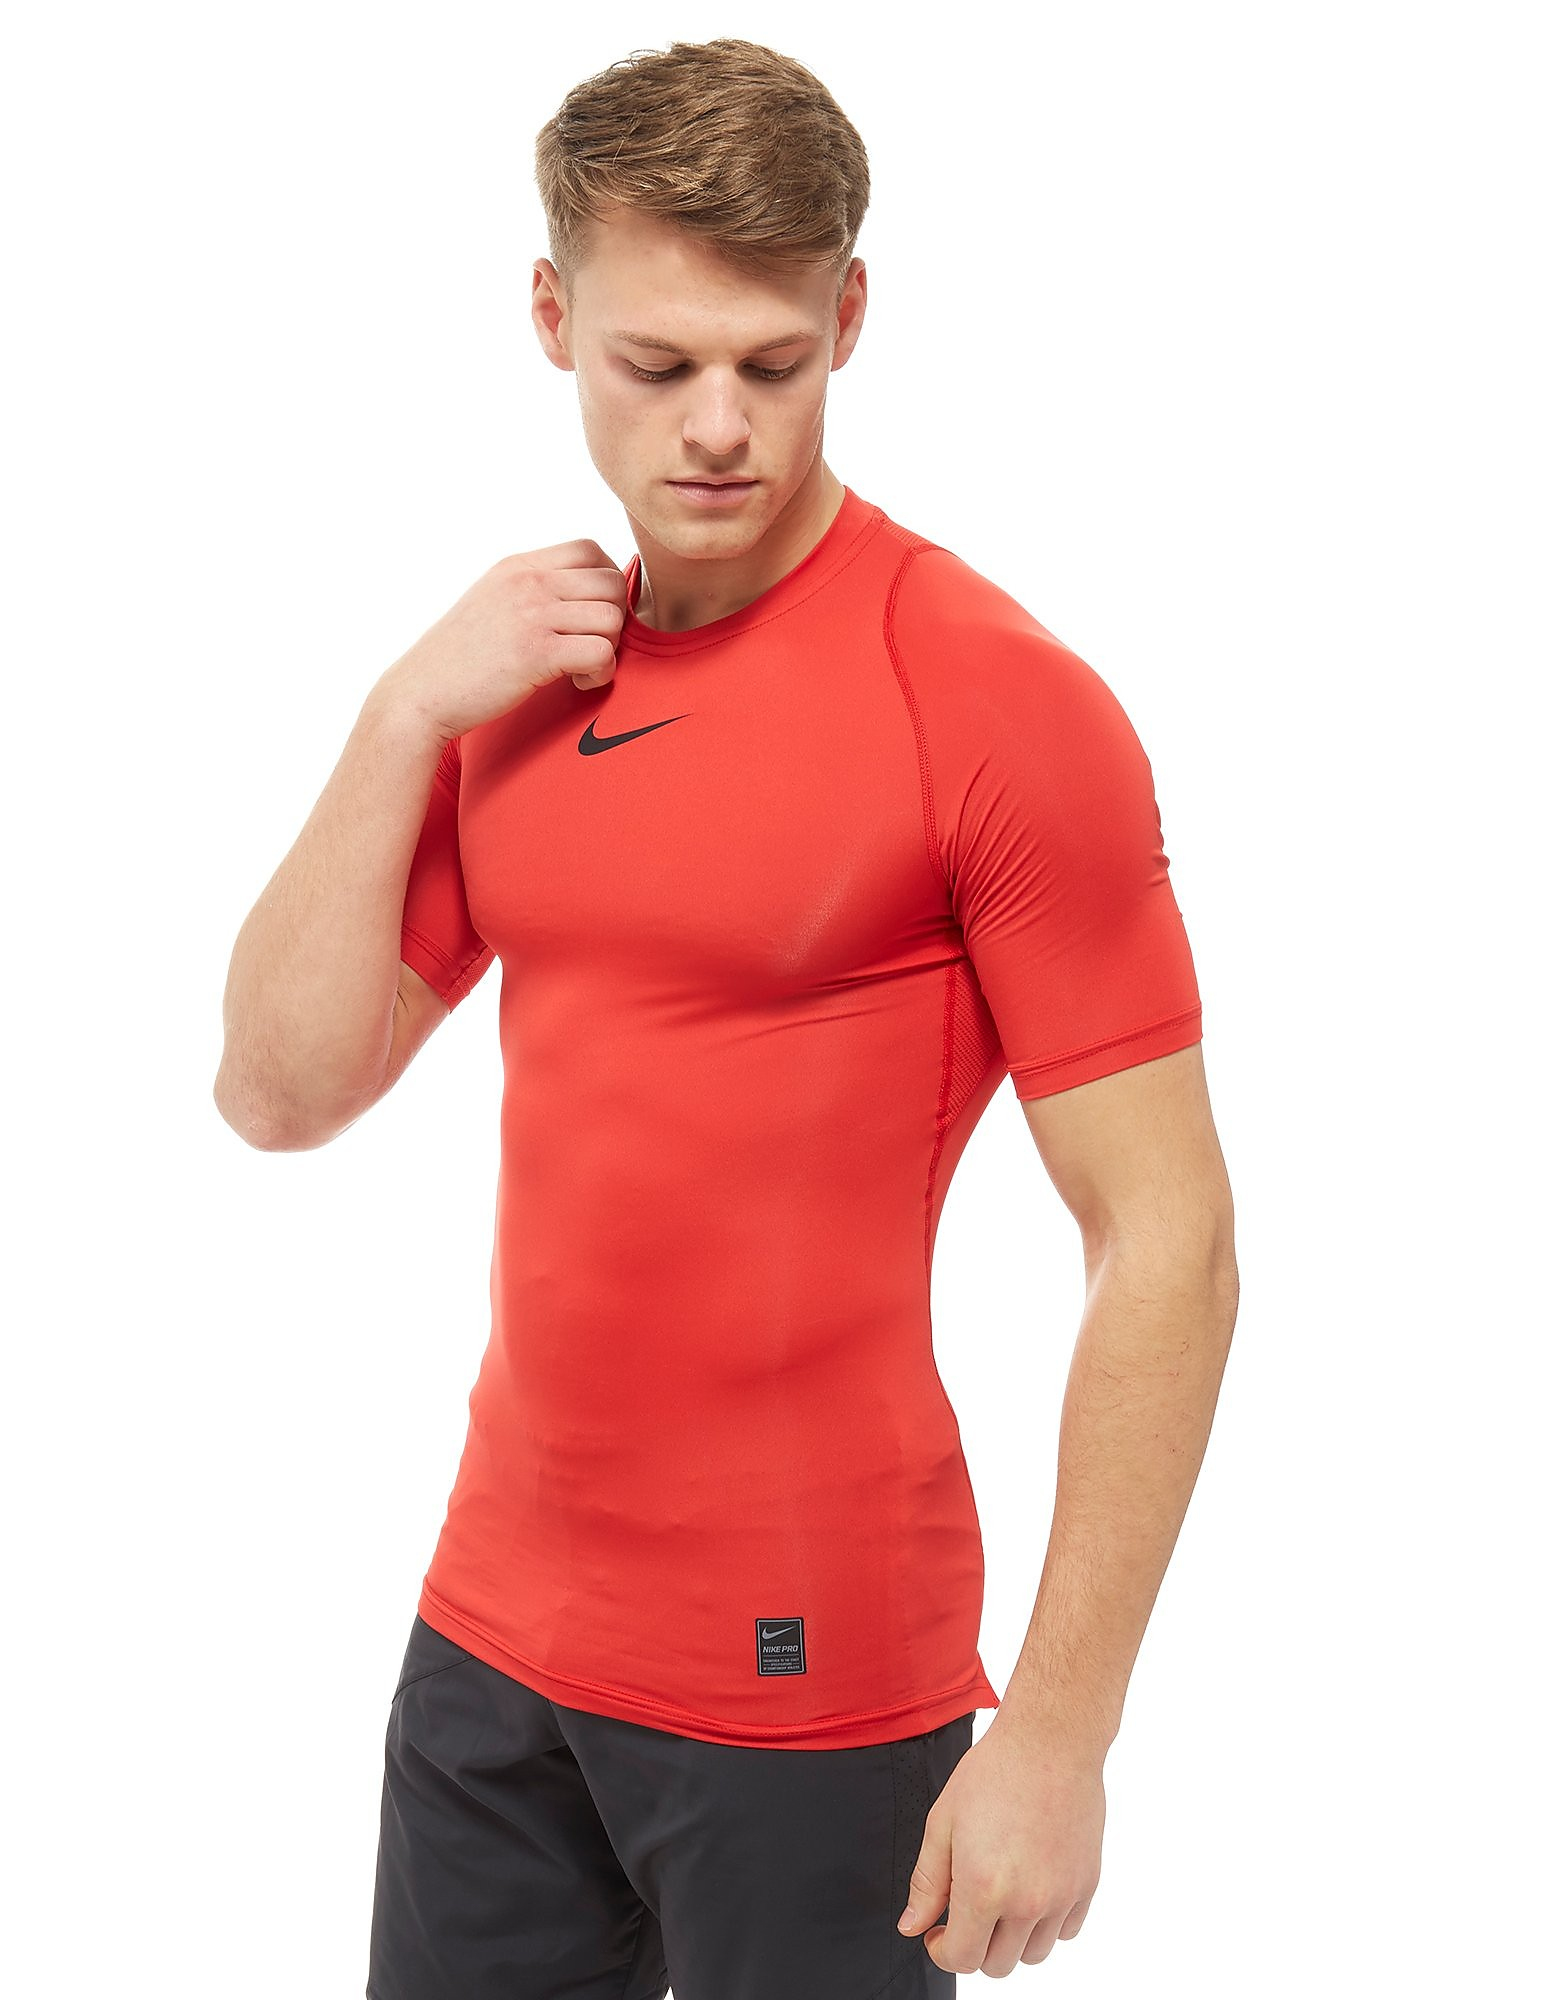 Nike Pro Compression Short Sleeve Top